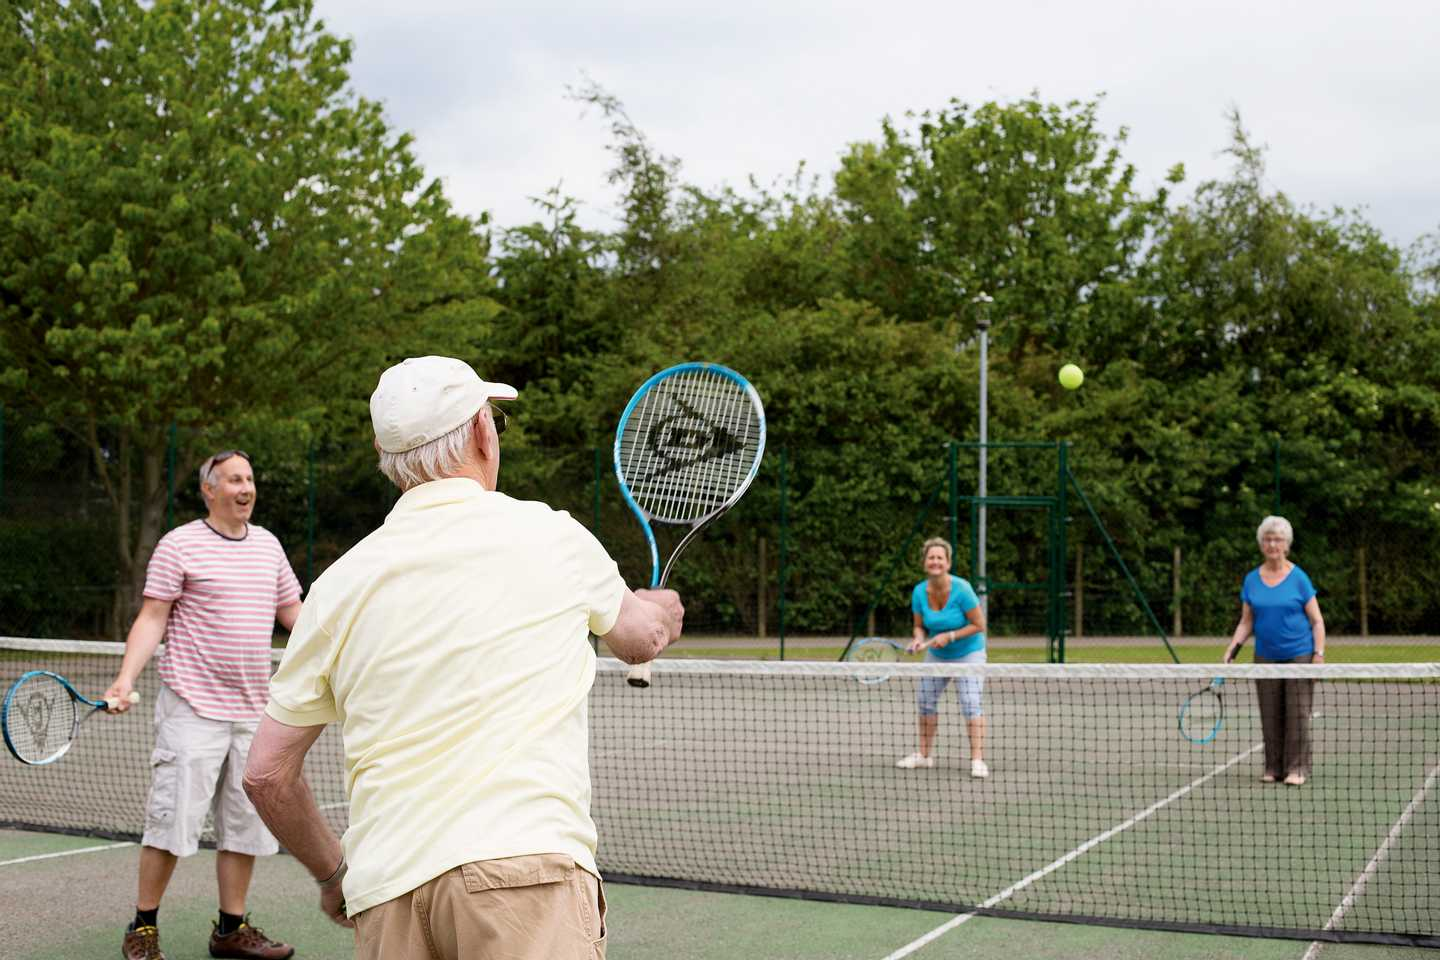 Friends playing a game of tennis doubles on the tennis court